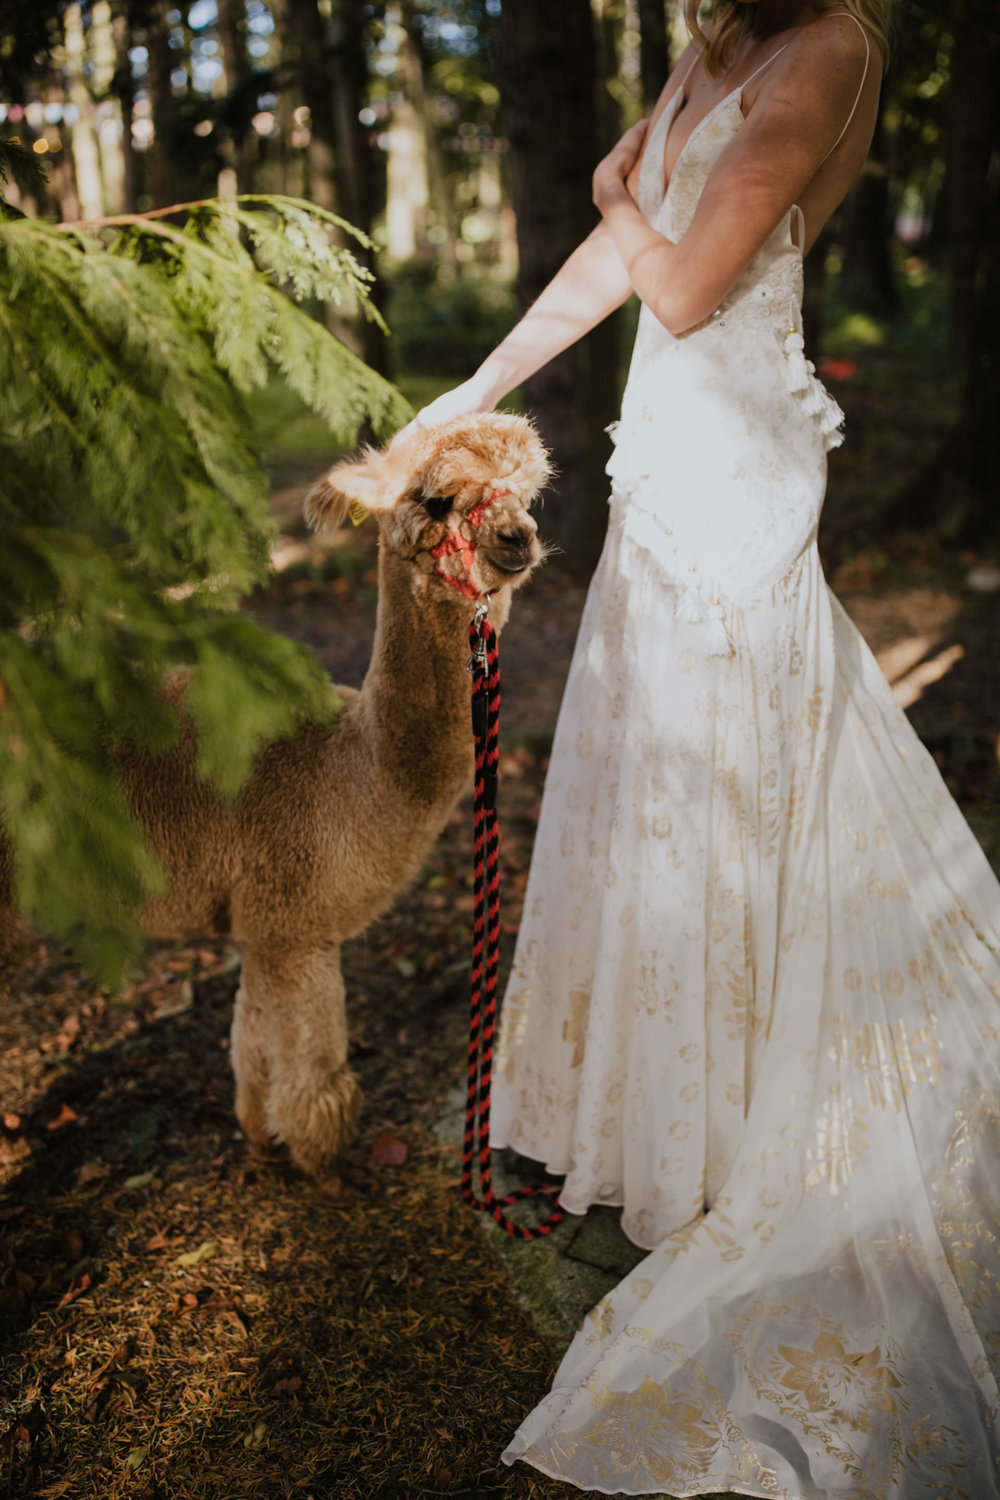 boho_wedding_alpaca_xpose_station_house_livia_figueiredo_photography_26.jpg